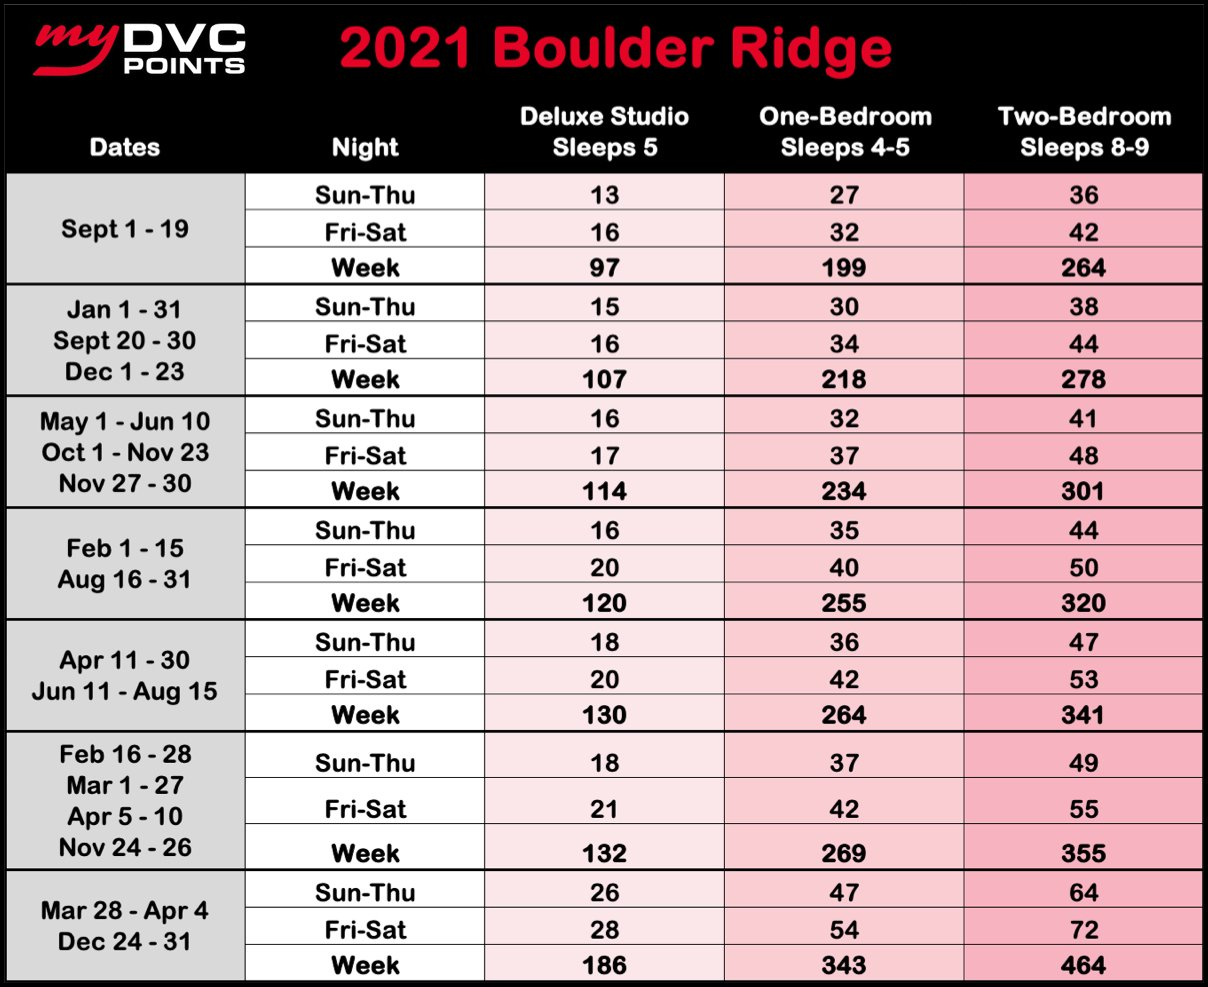 Boulder Ridge Villas 2021 Point Charts